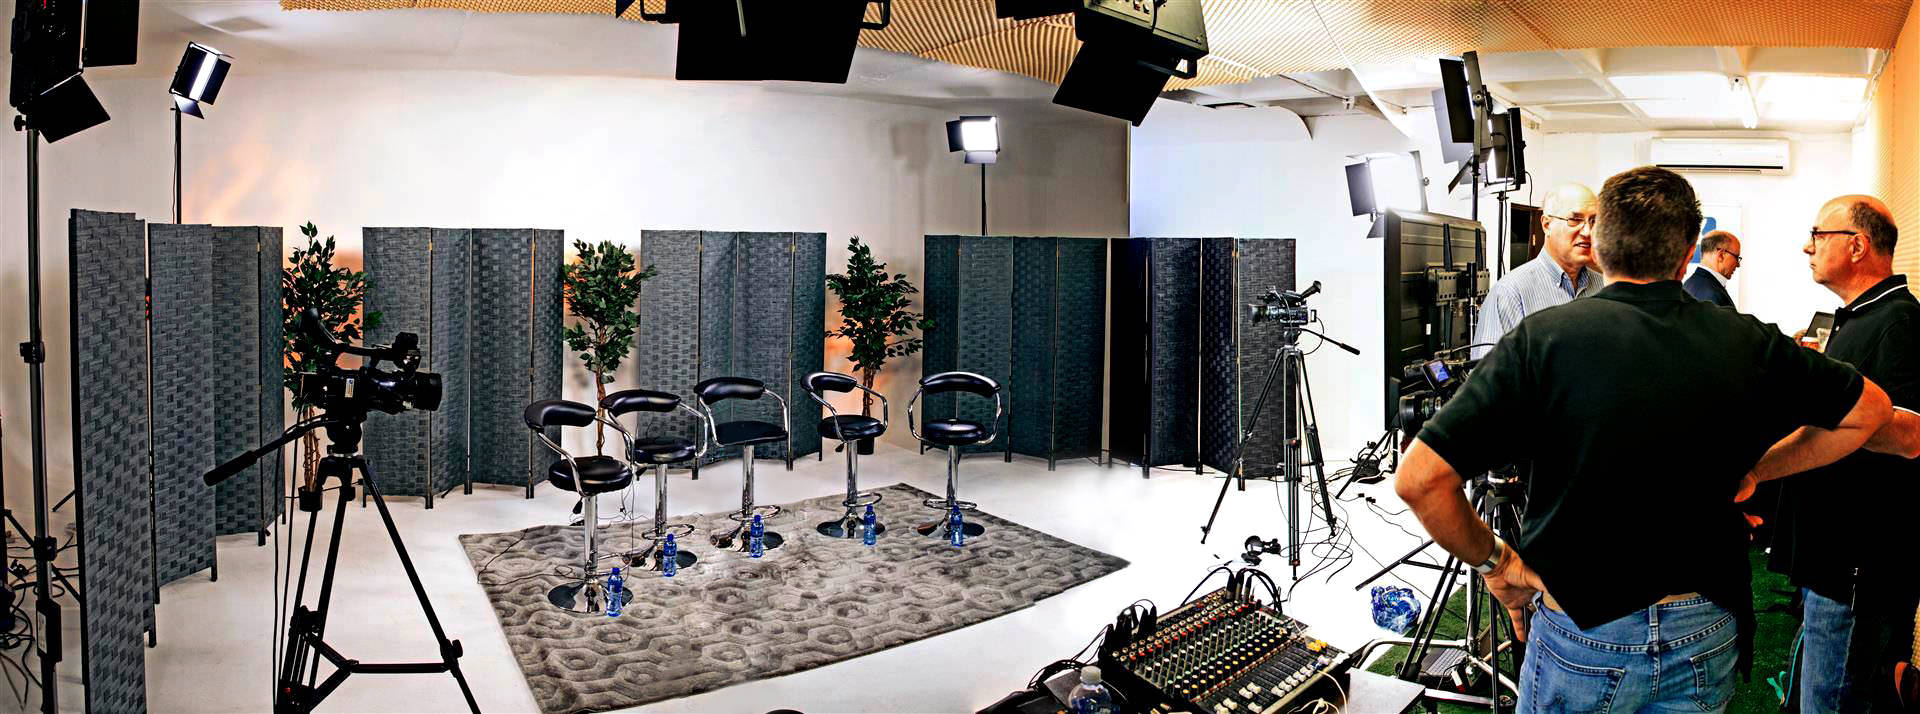 Photographic and Video Studio For Hire Durban